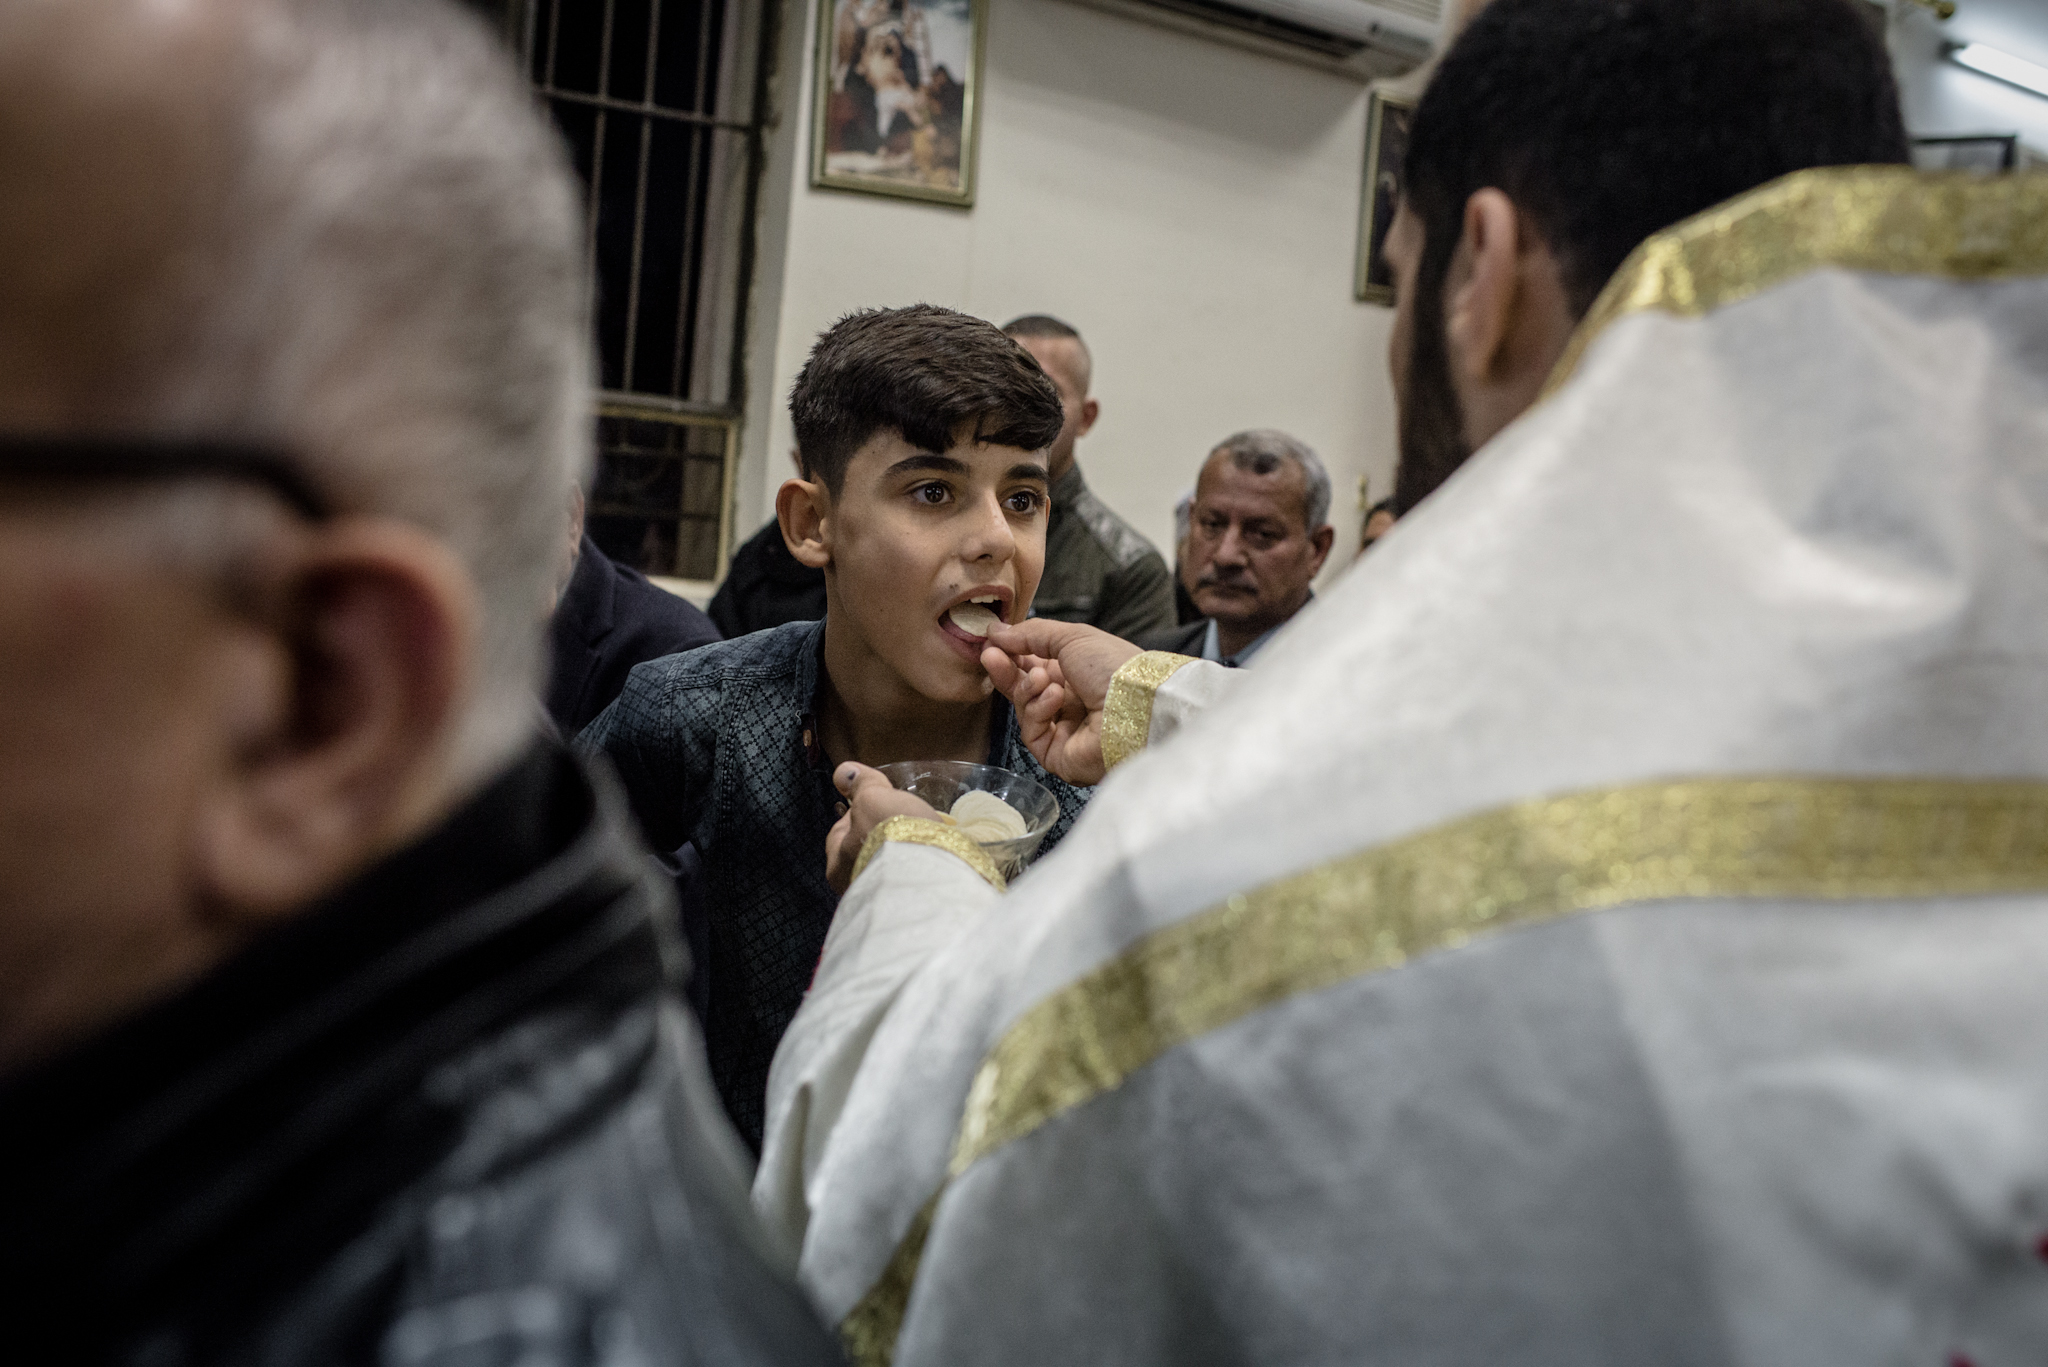 Iraqi Christians, many displaced during the capture of Mosul and its surrounding countryside by ISIS last year, take communion during a Christmas Eve mass at a church in the Ankawa neighborhood, of Erbil, Kurdistan on December 24, 2015.